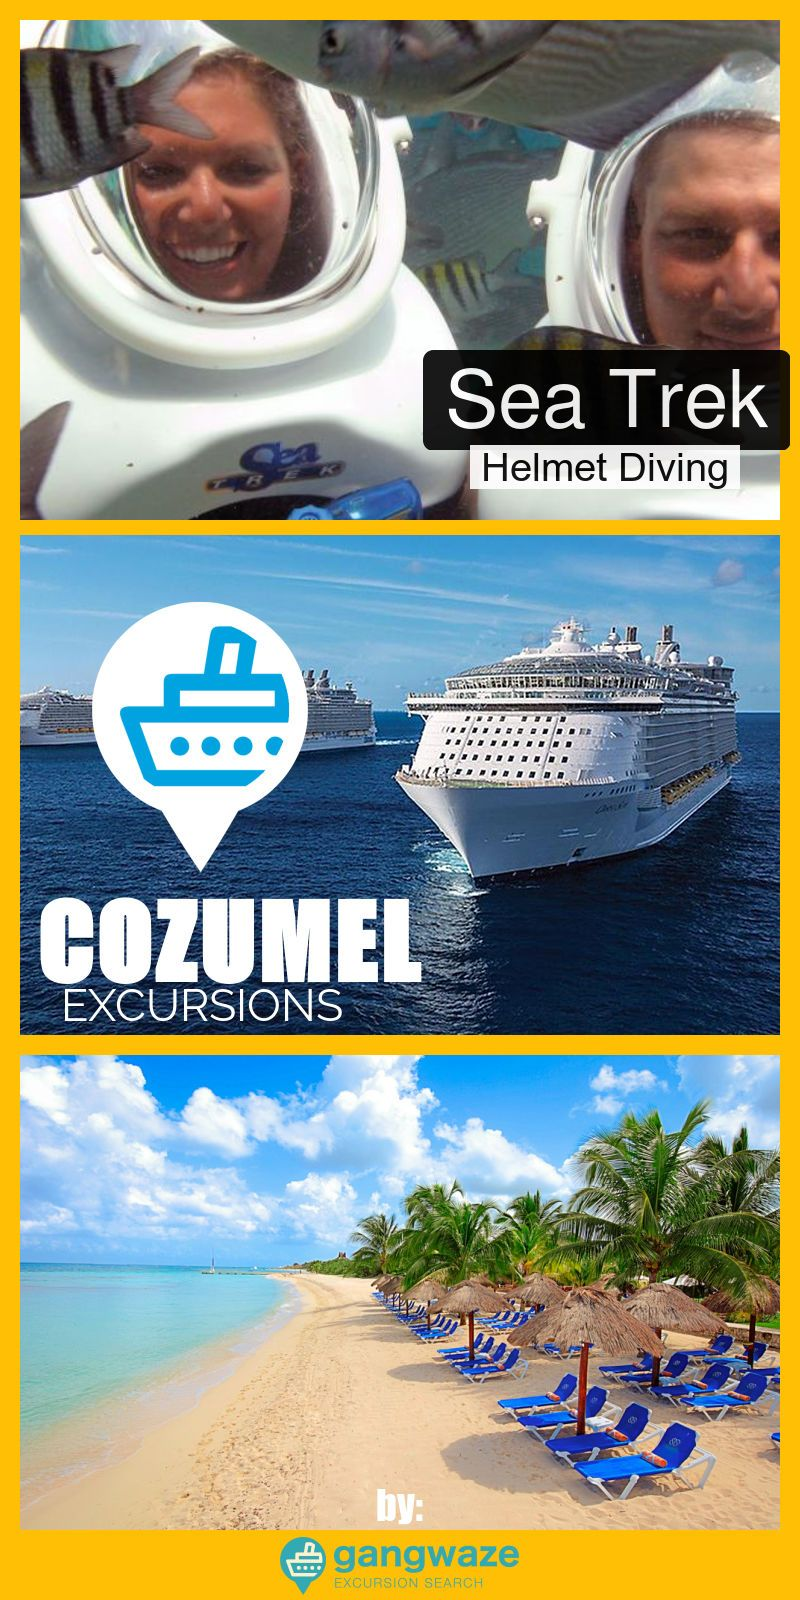 Sea Trek Helmet Diving Cruise Excursion Cozumel Cruise Port